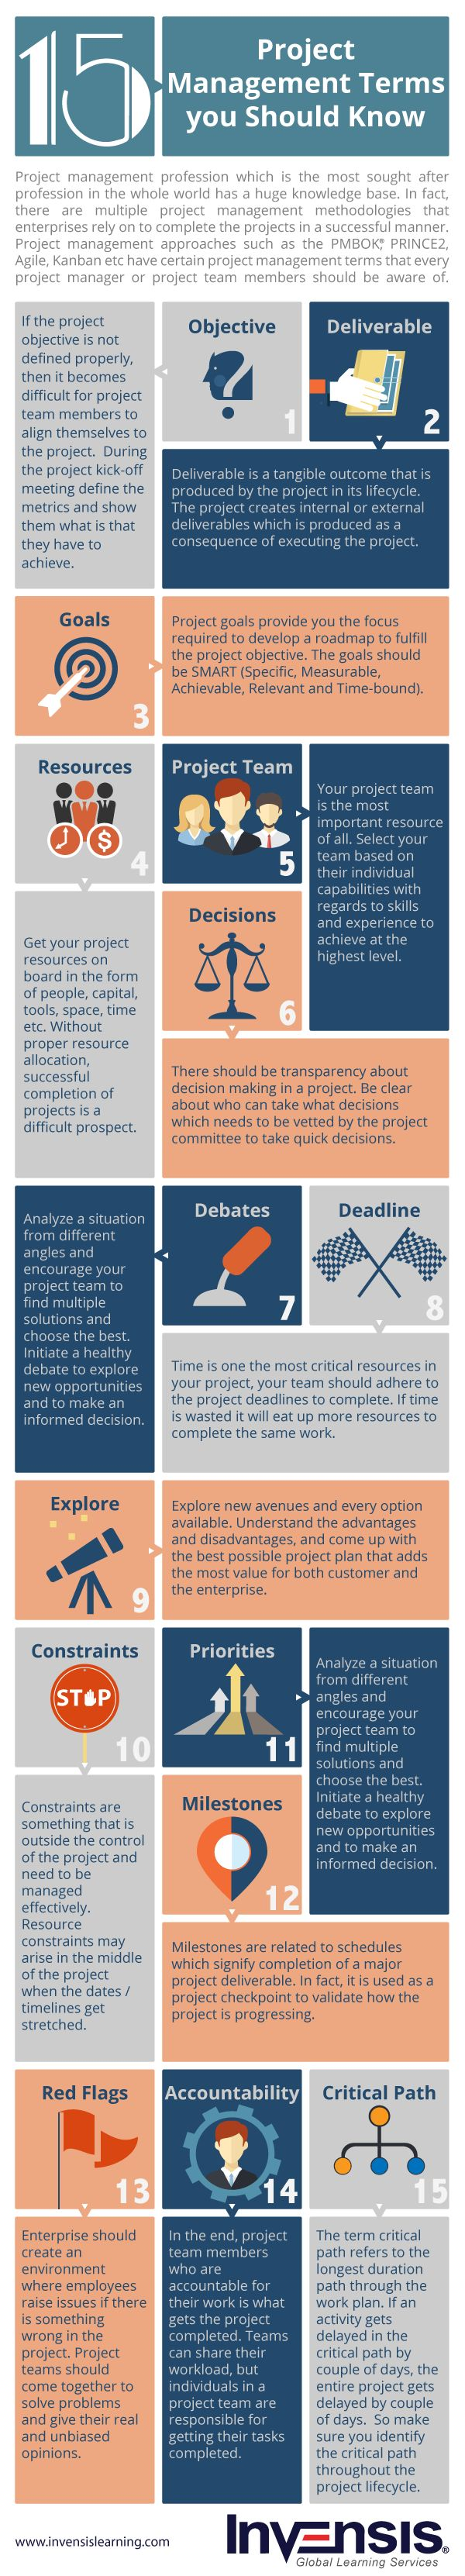 15 Project Management Terms you Should Know Infographic - http://elearninginfographics.com/15-project-management-terms-know-infographic/ #BusinessAnalyst